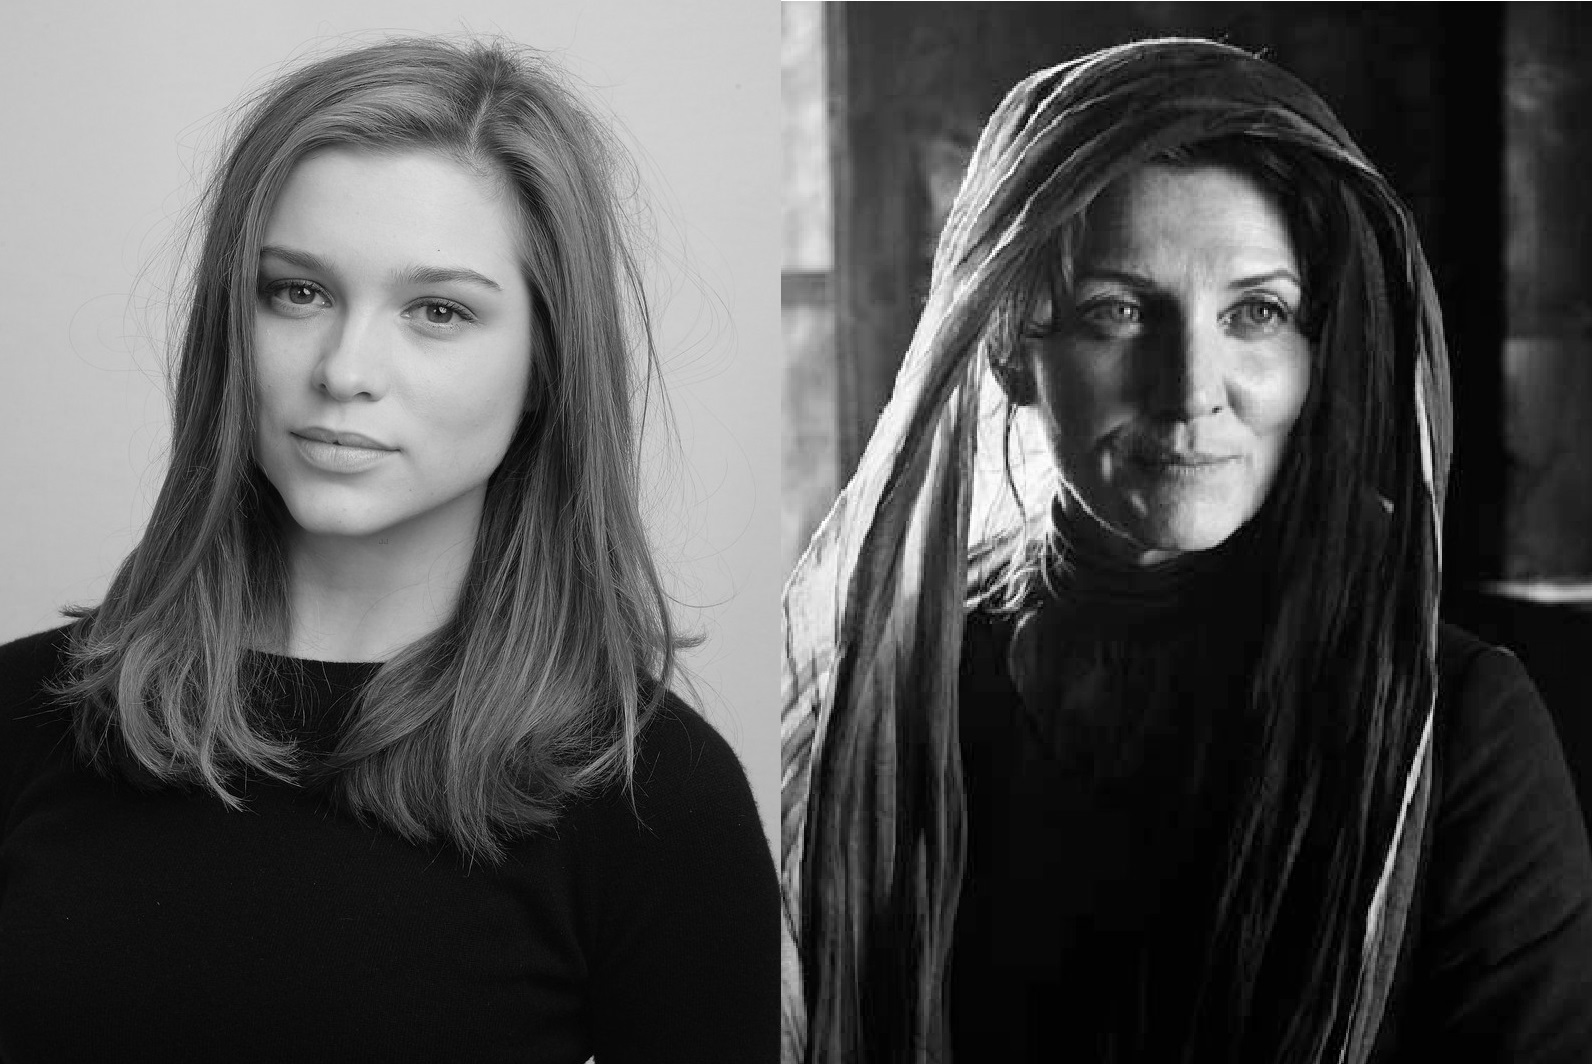 Sophie Cookson as Catelyn Tully